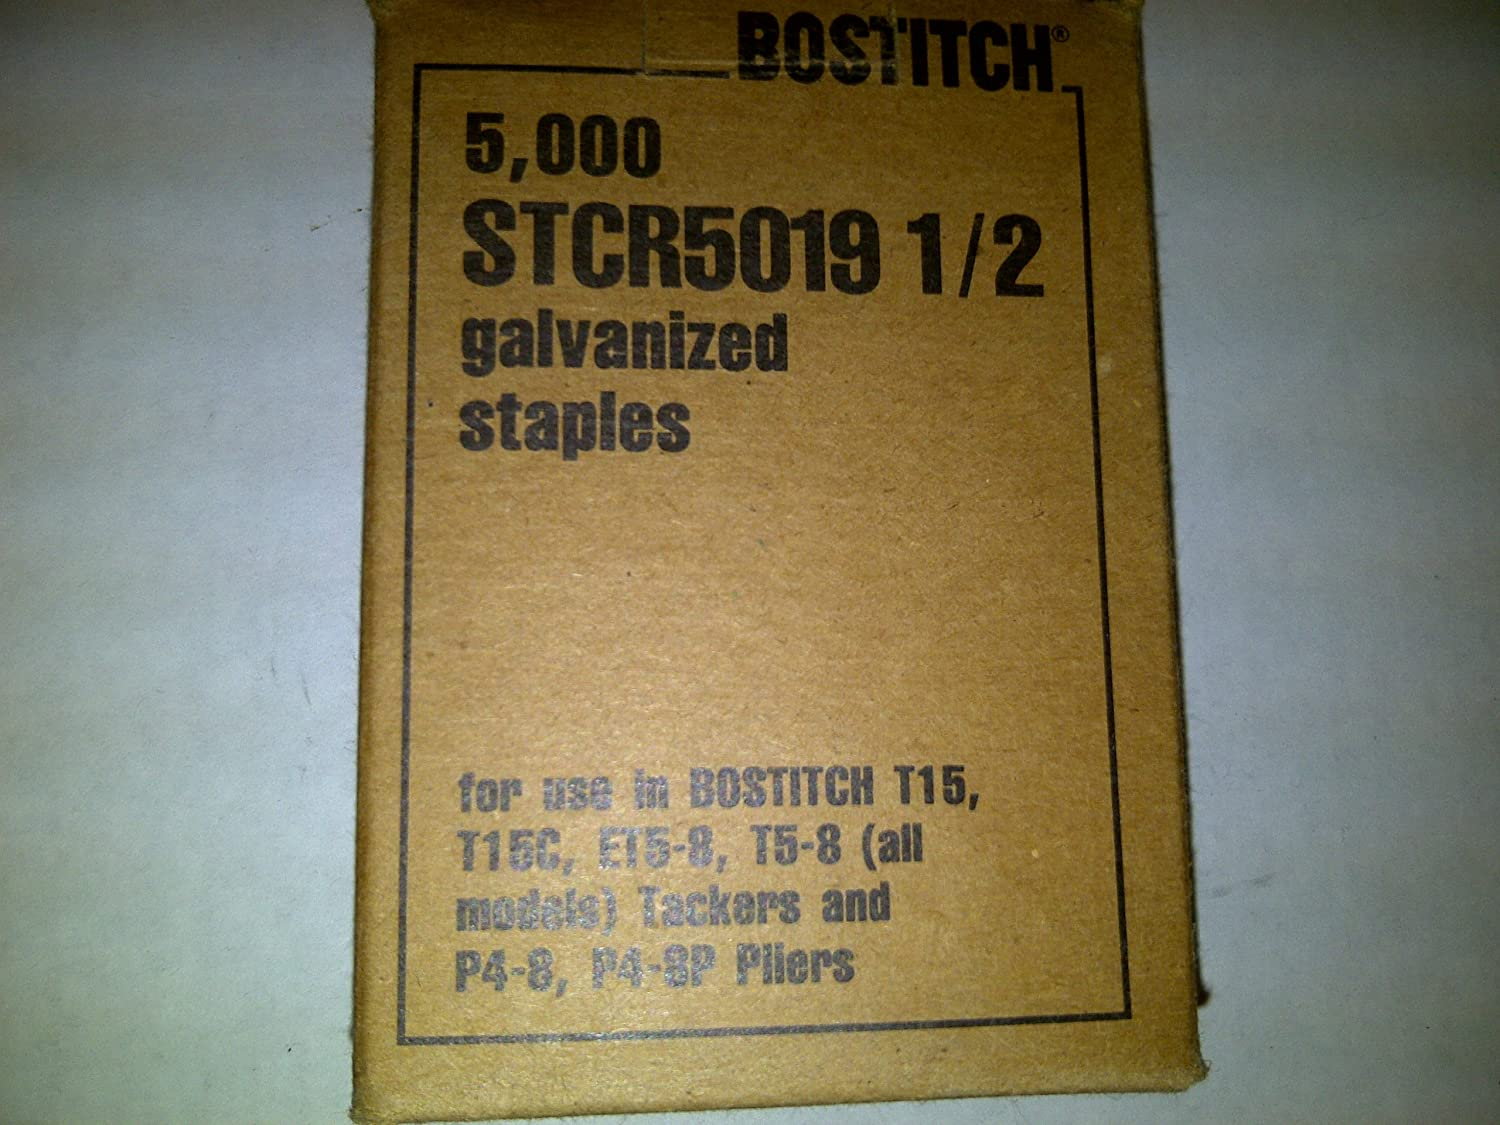 Bostitch Staples: Galvanized Staples Bostitch STCR5019 1/2' 5,000 per box. For T15, T15C, ET5-8, T5-8 (all models) Tackers and P4-8, P4-8P Pliers. Made in USA 6CE3812